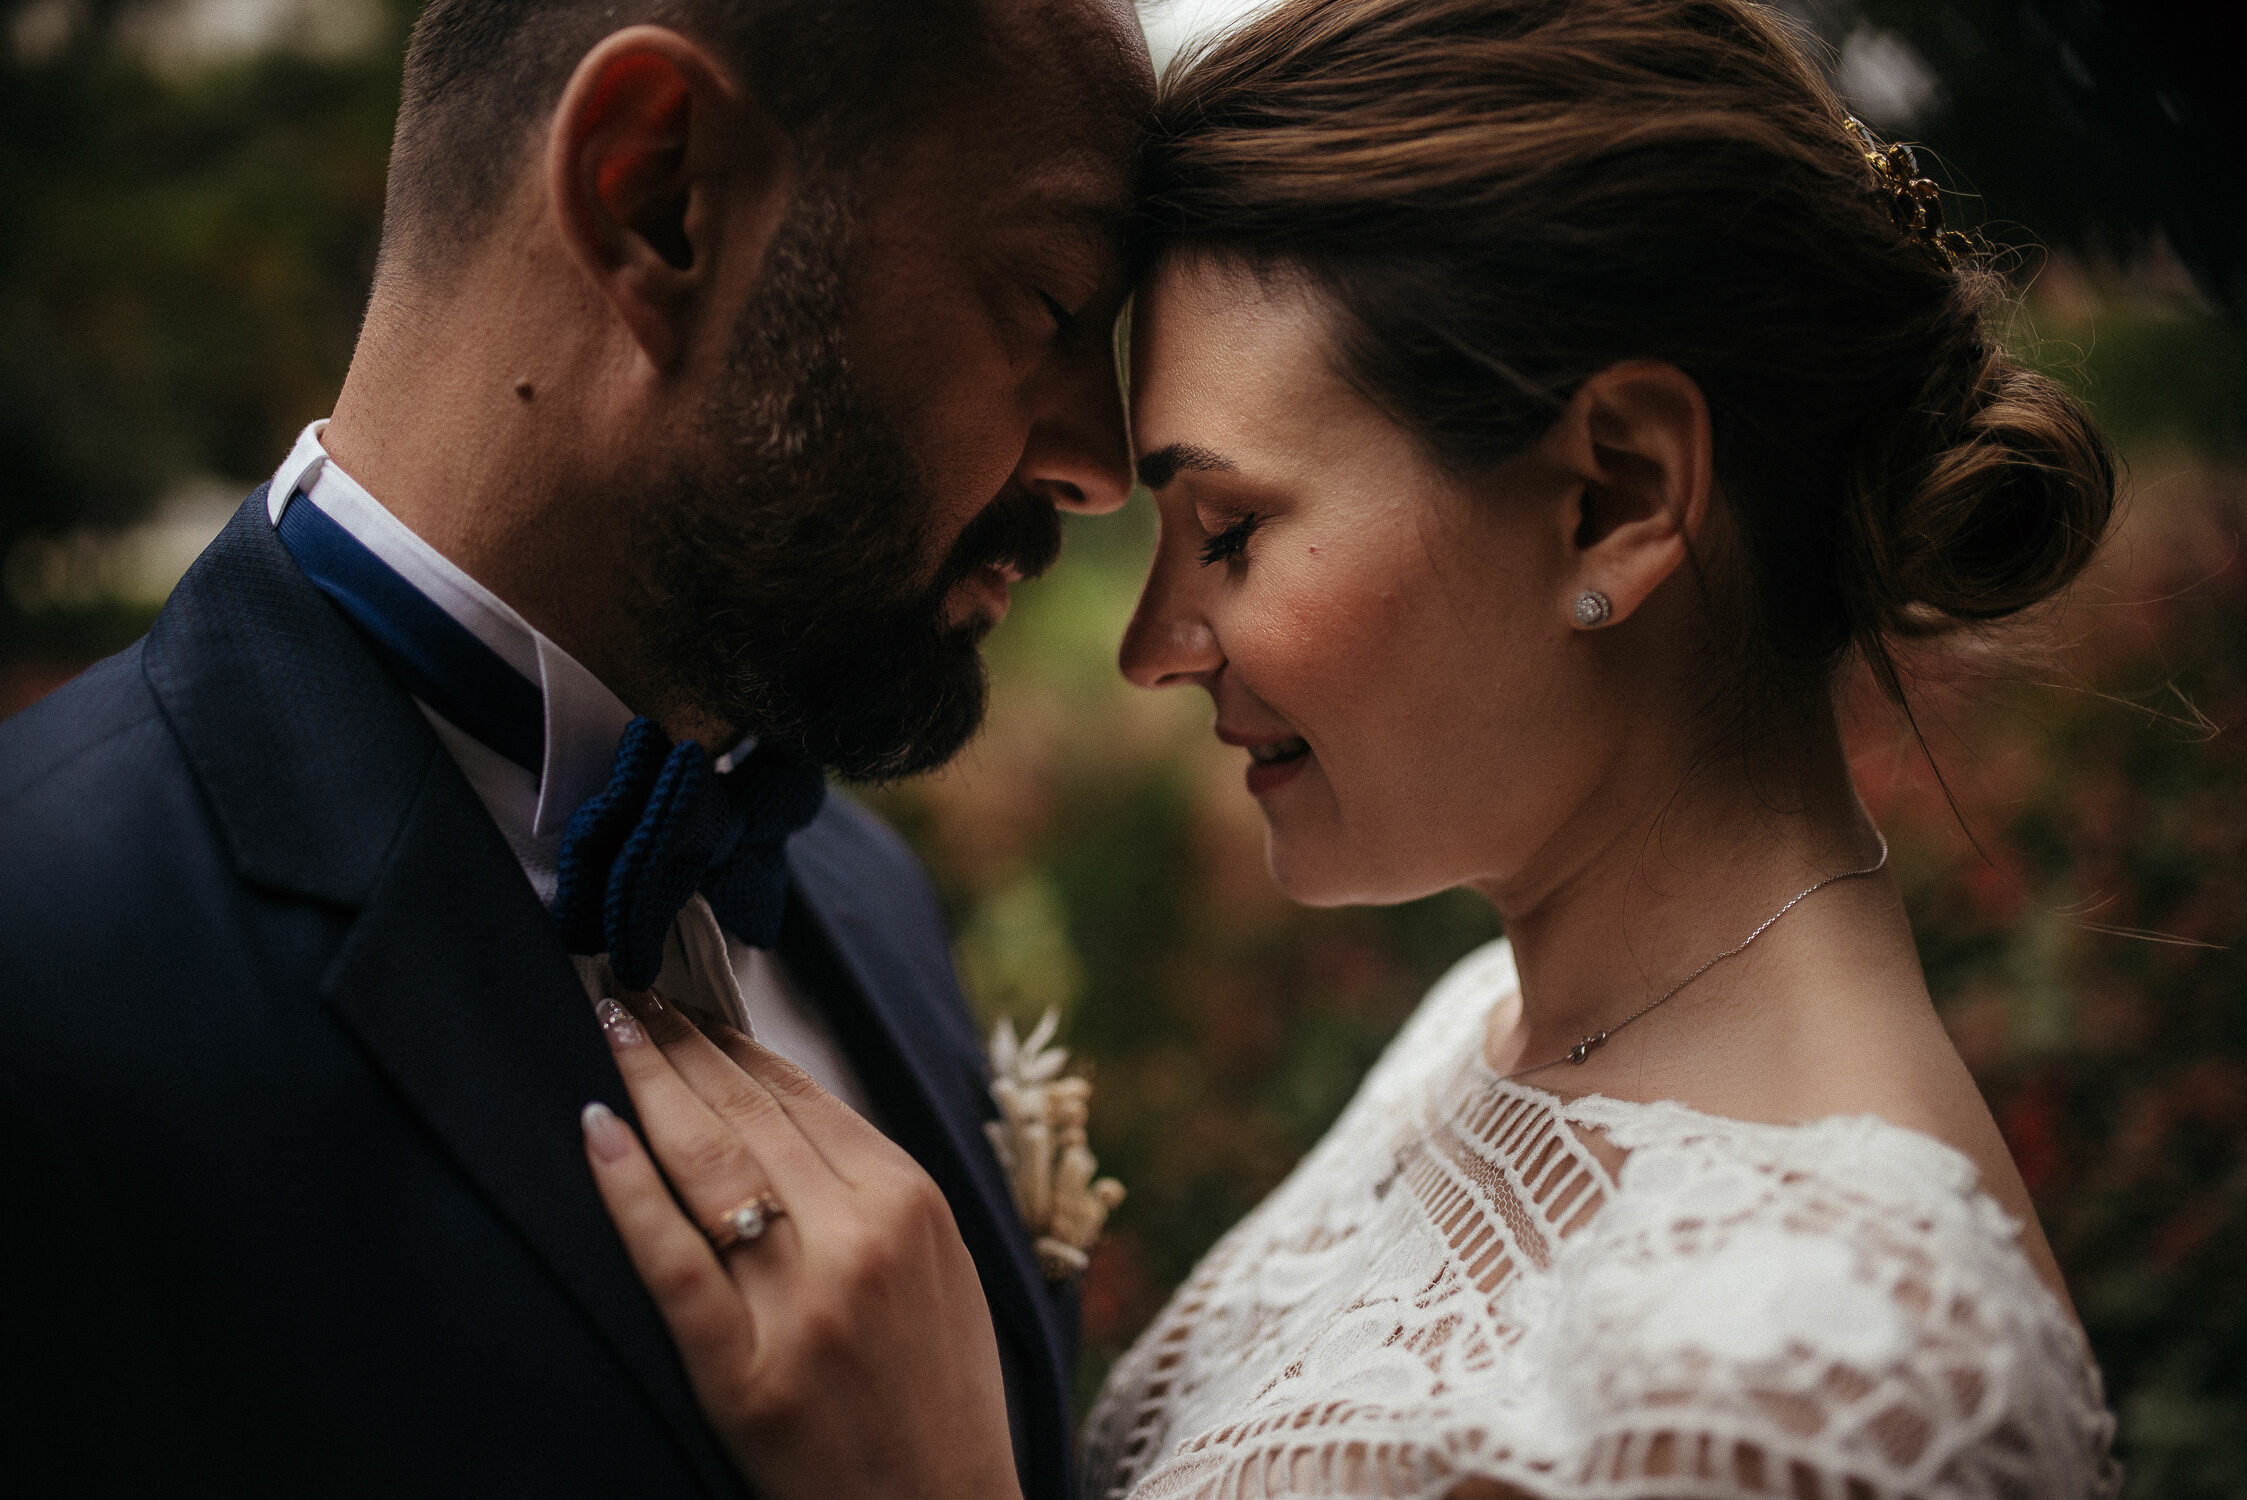 Turkish wedding barcelona couple photo shoot